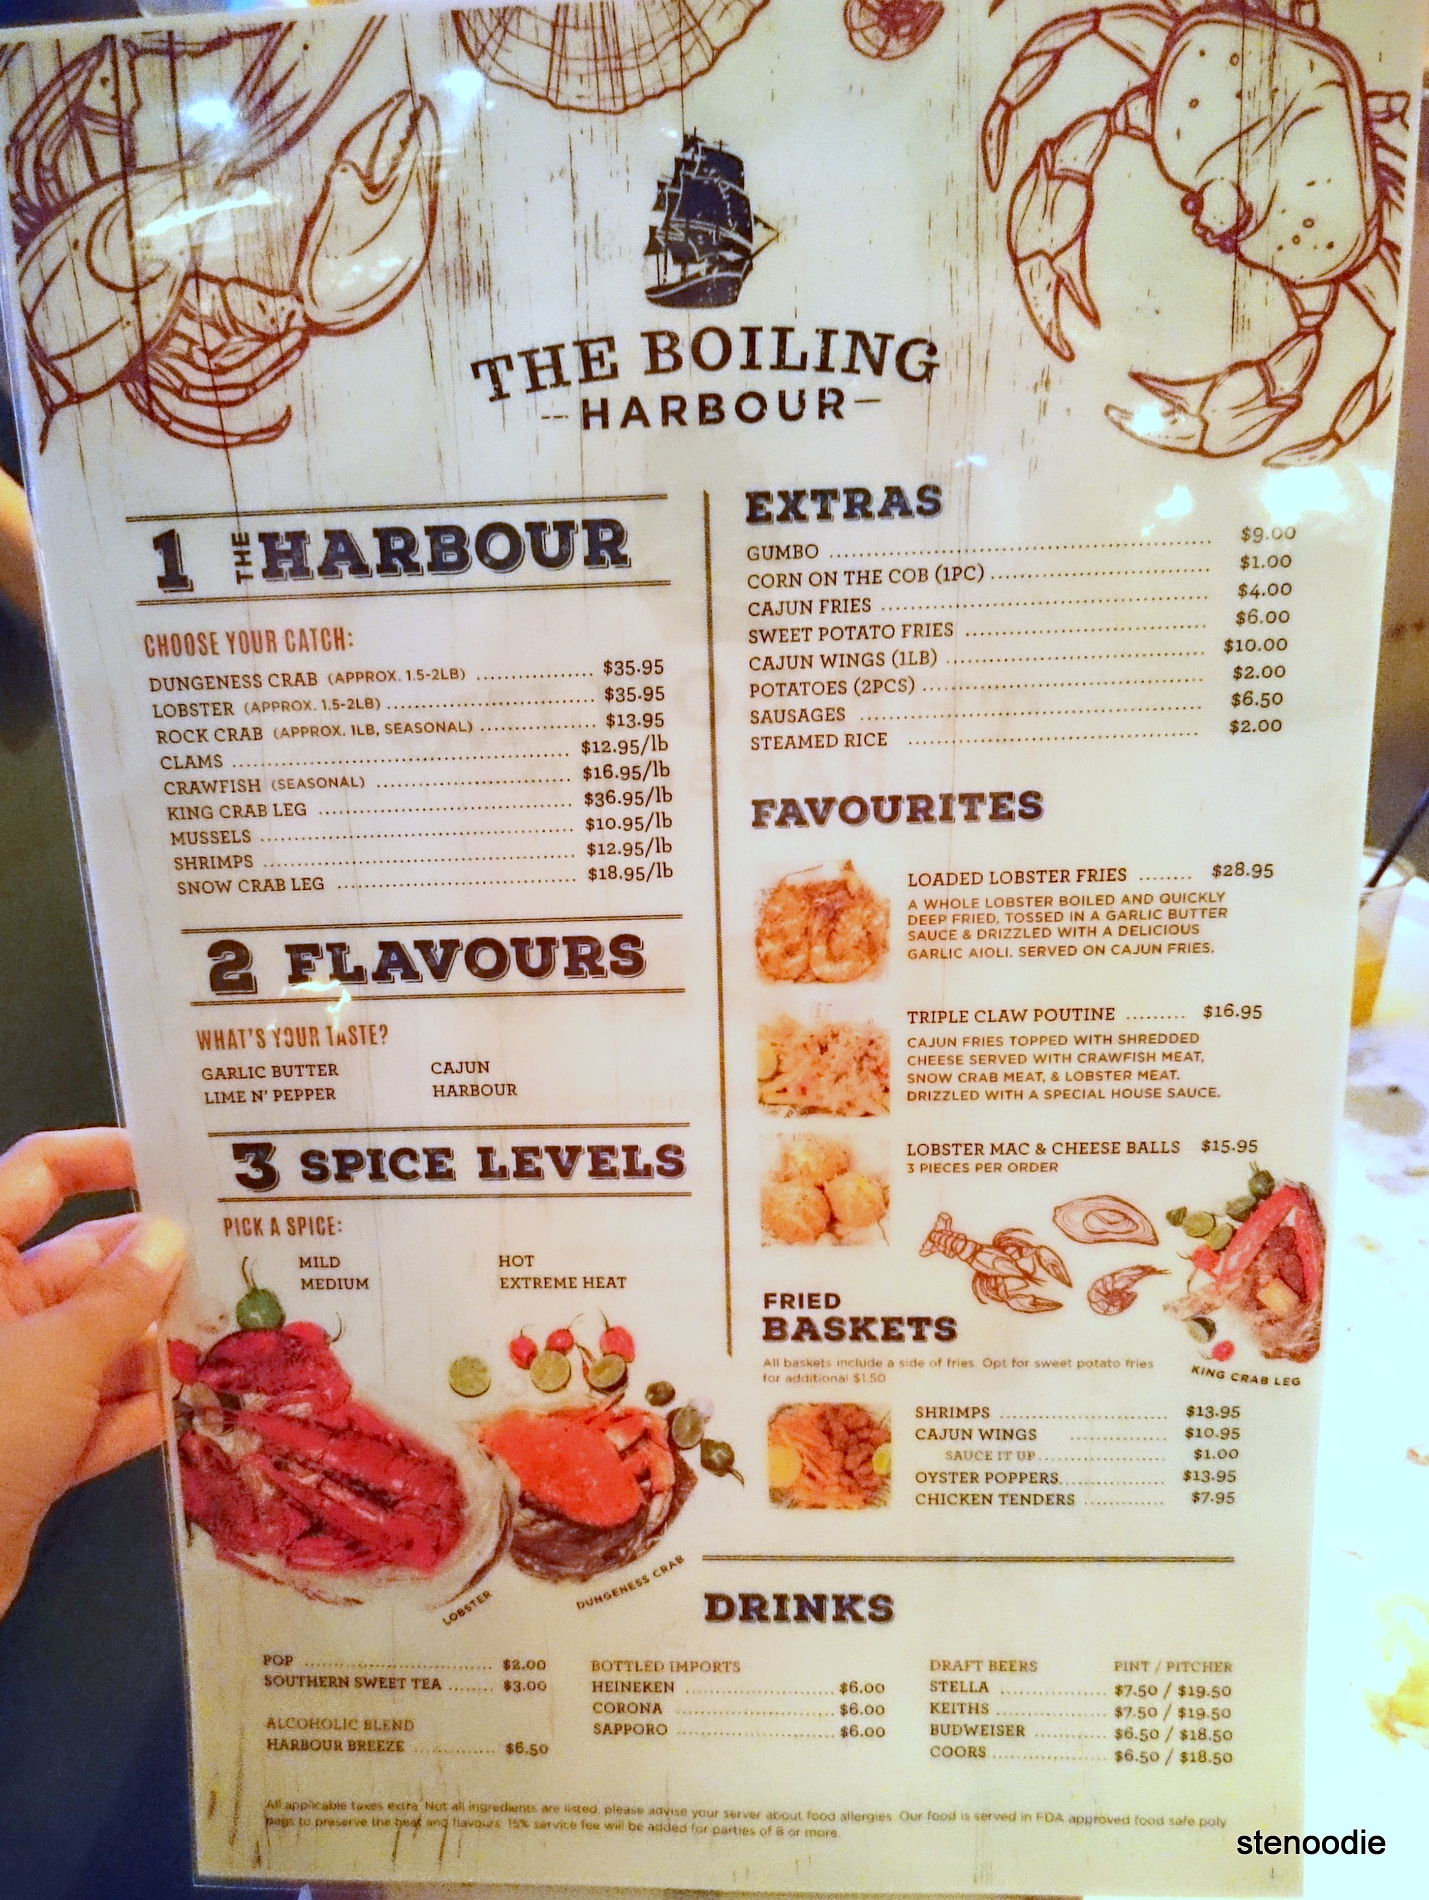 The Boiling Harbour menu